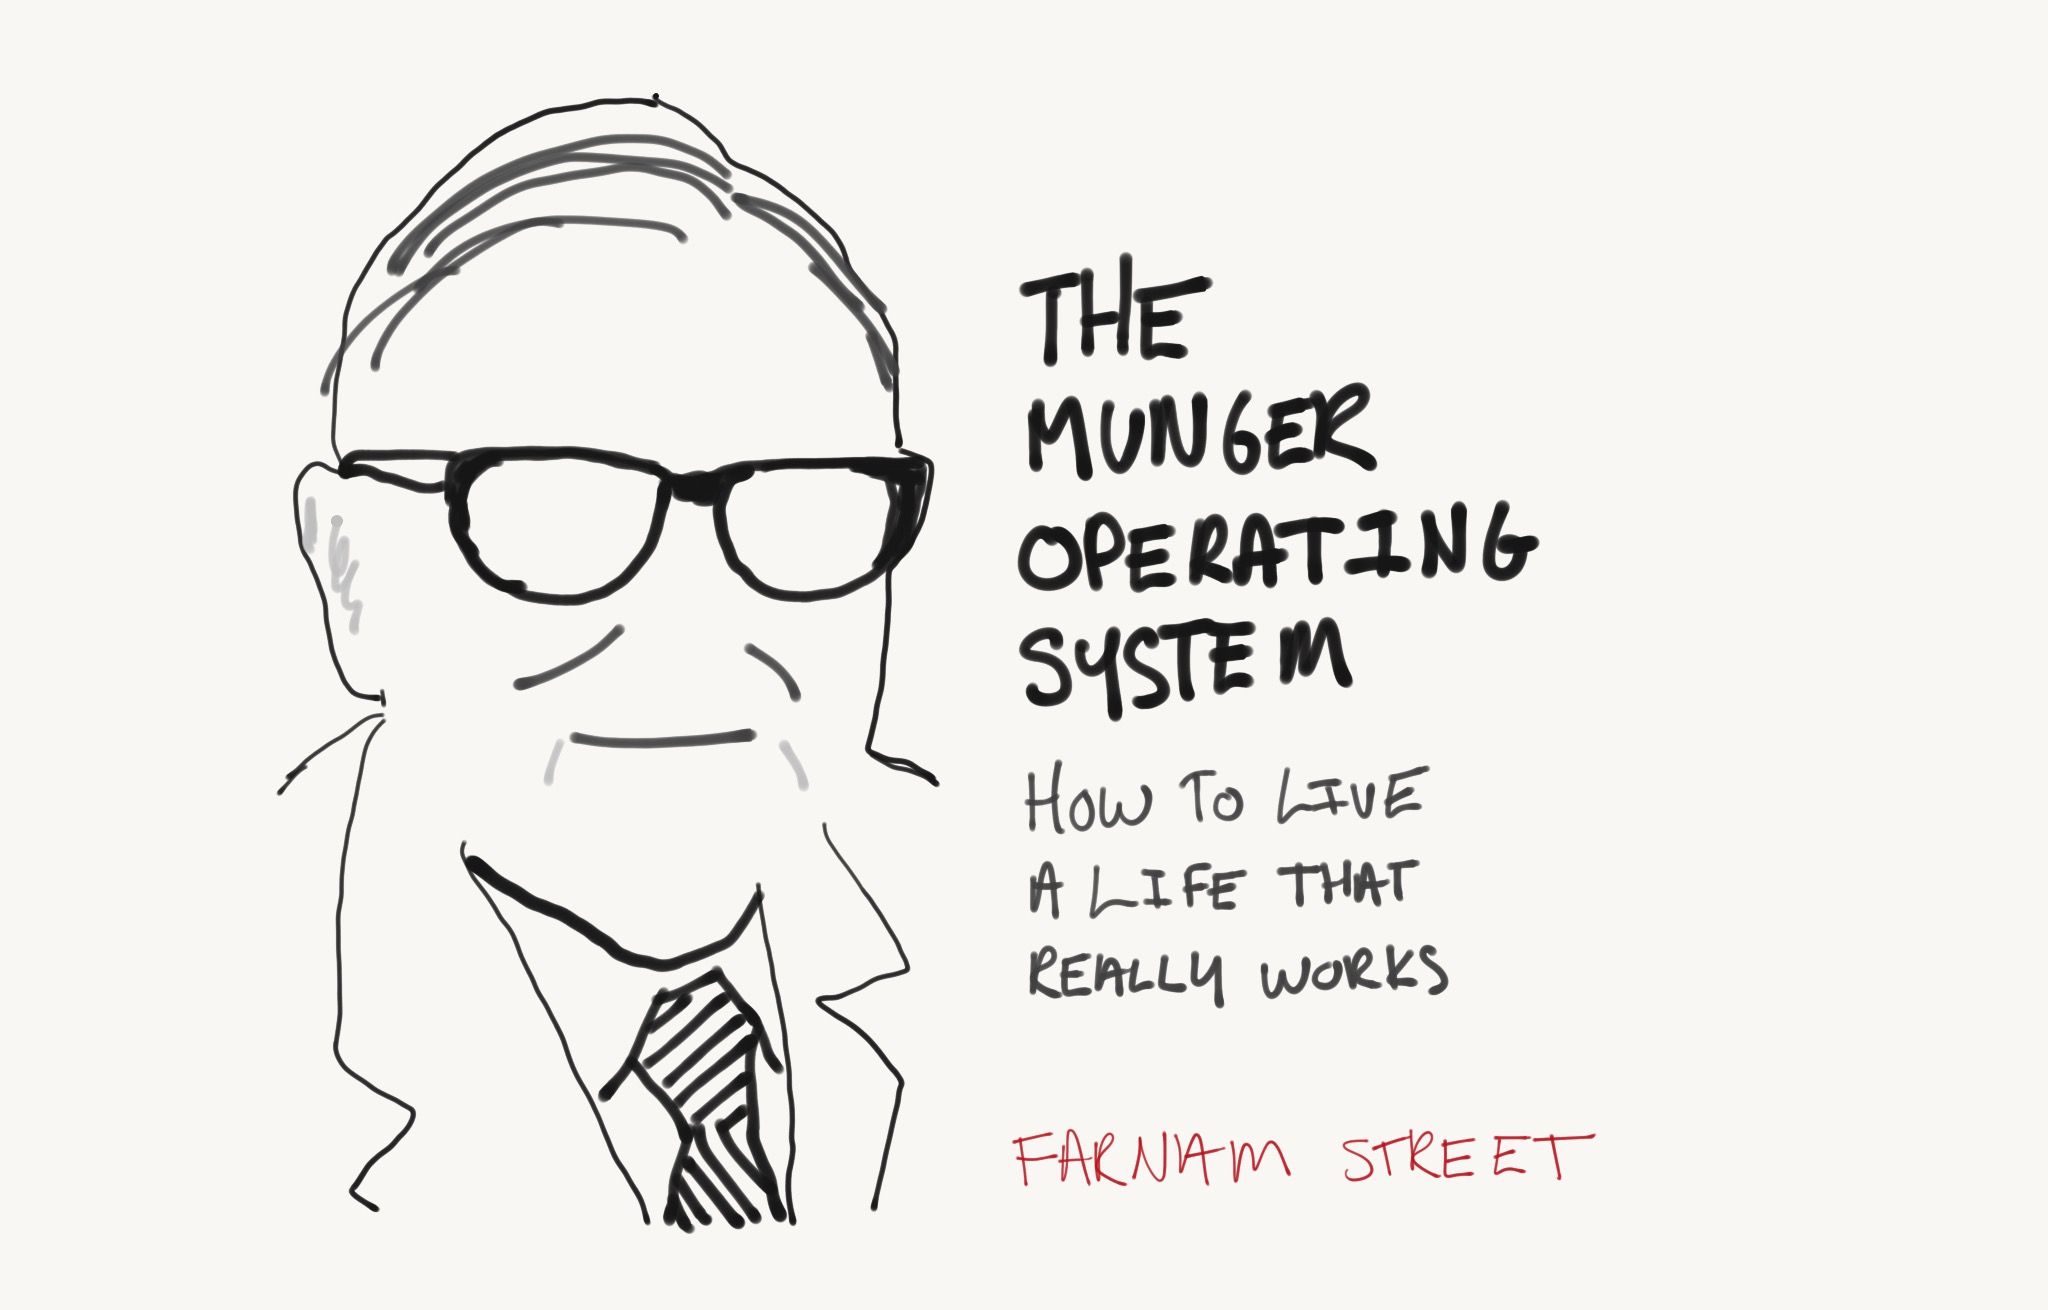 The Munger Operating System: A Life That Really Works